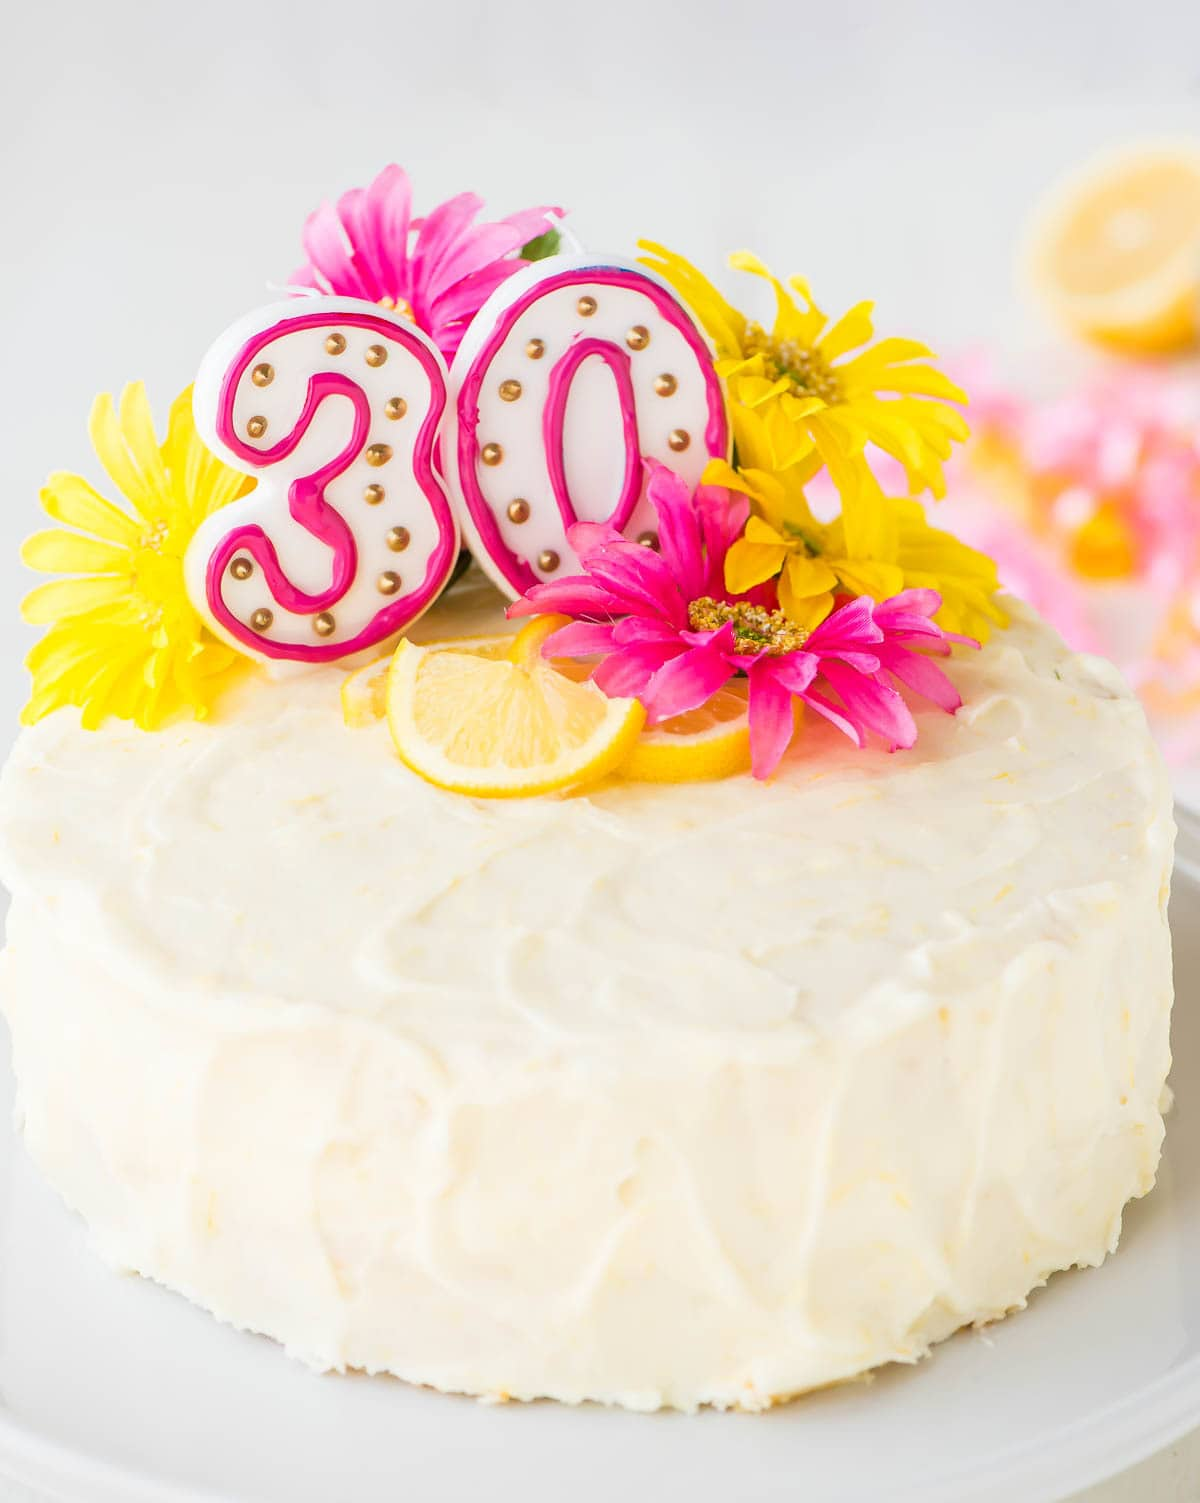 Gorgeous idea for a birthday cake. Lemon cake with lemon cream cheese frosting. The cake is so moist, tender, and fluffy, and the lemon cream cheese frosting is sublime! @wellplated